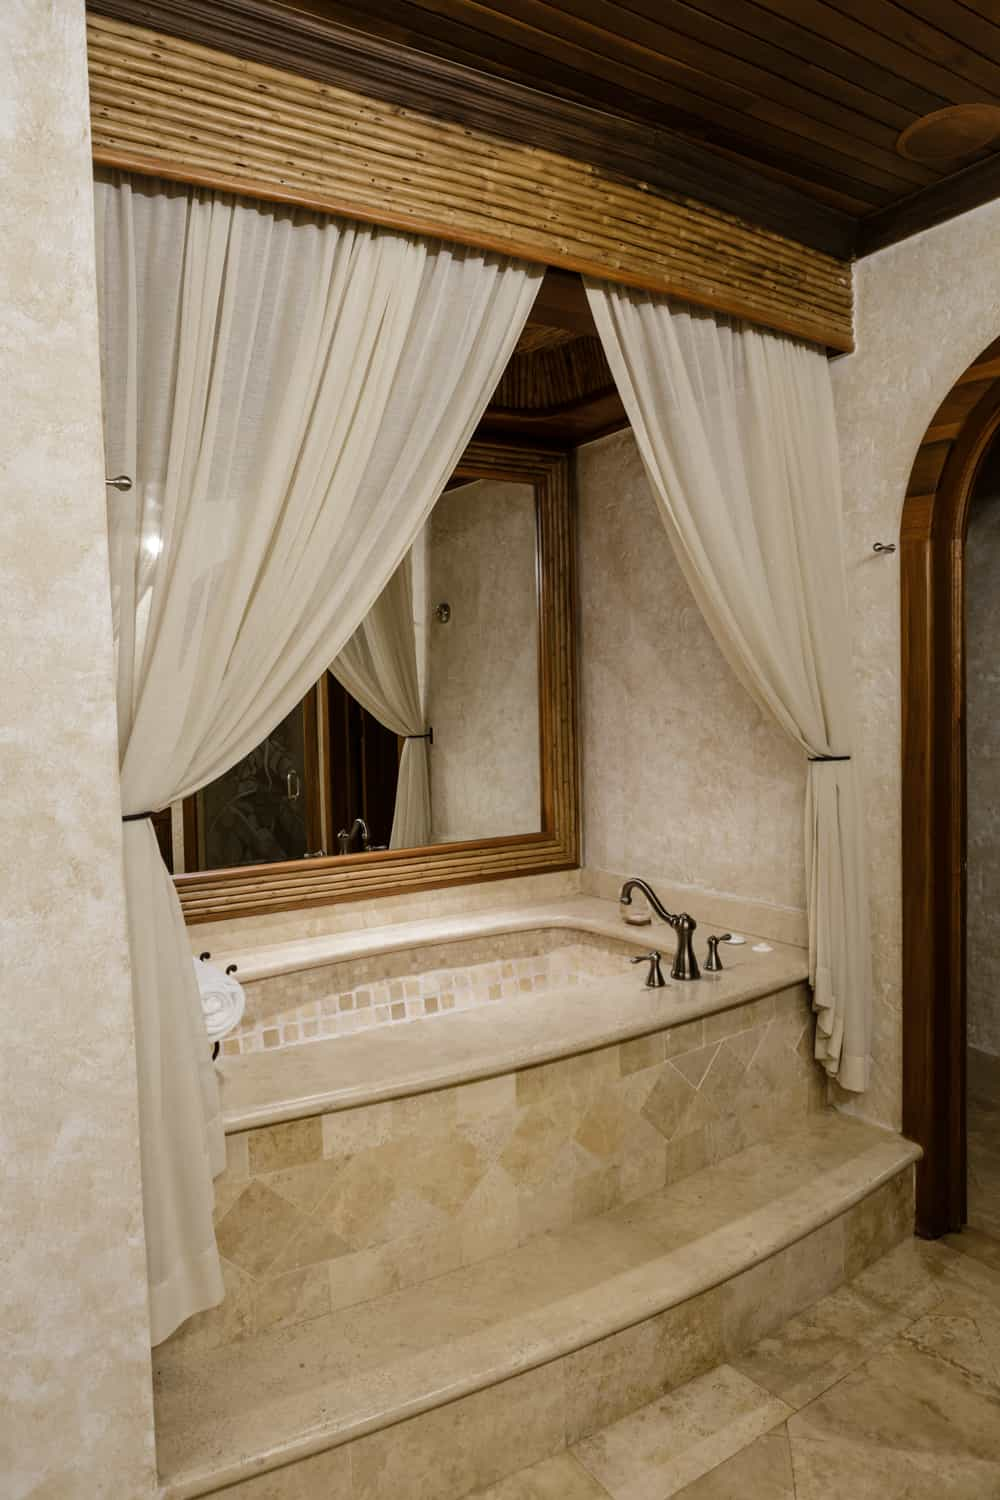 Jacuzzi tub niche in natural stone with curtains.